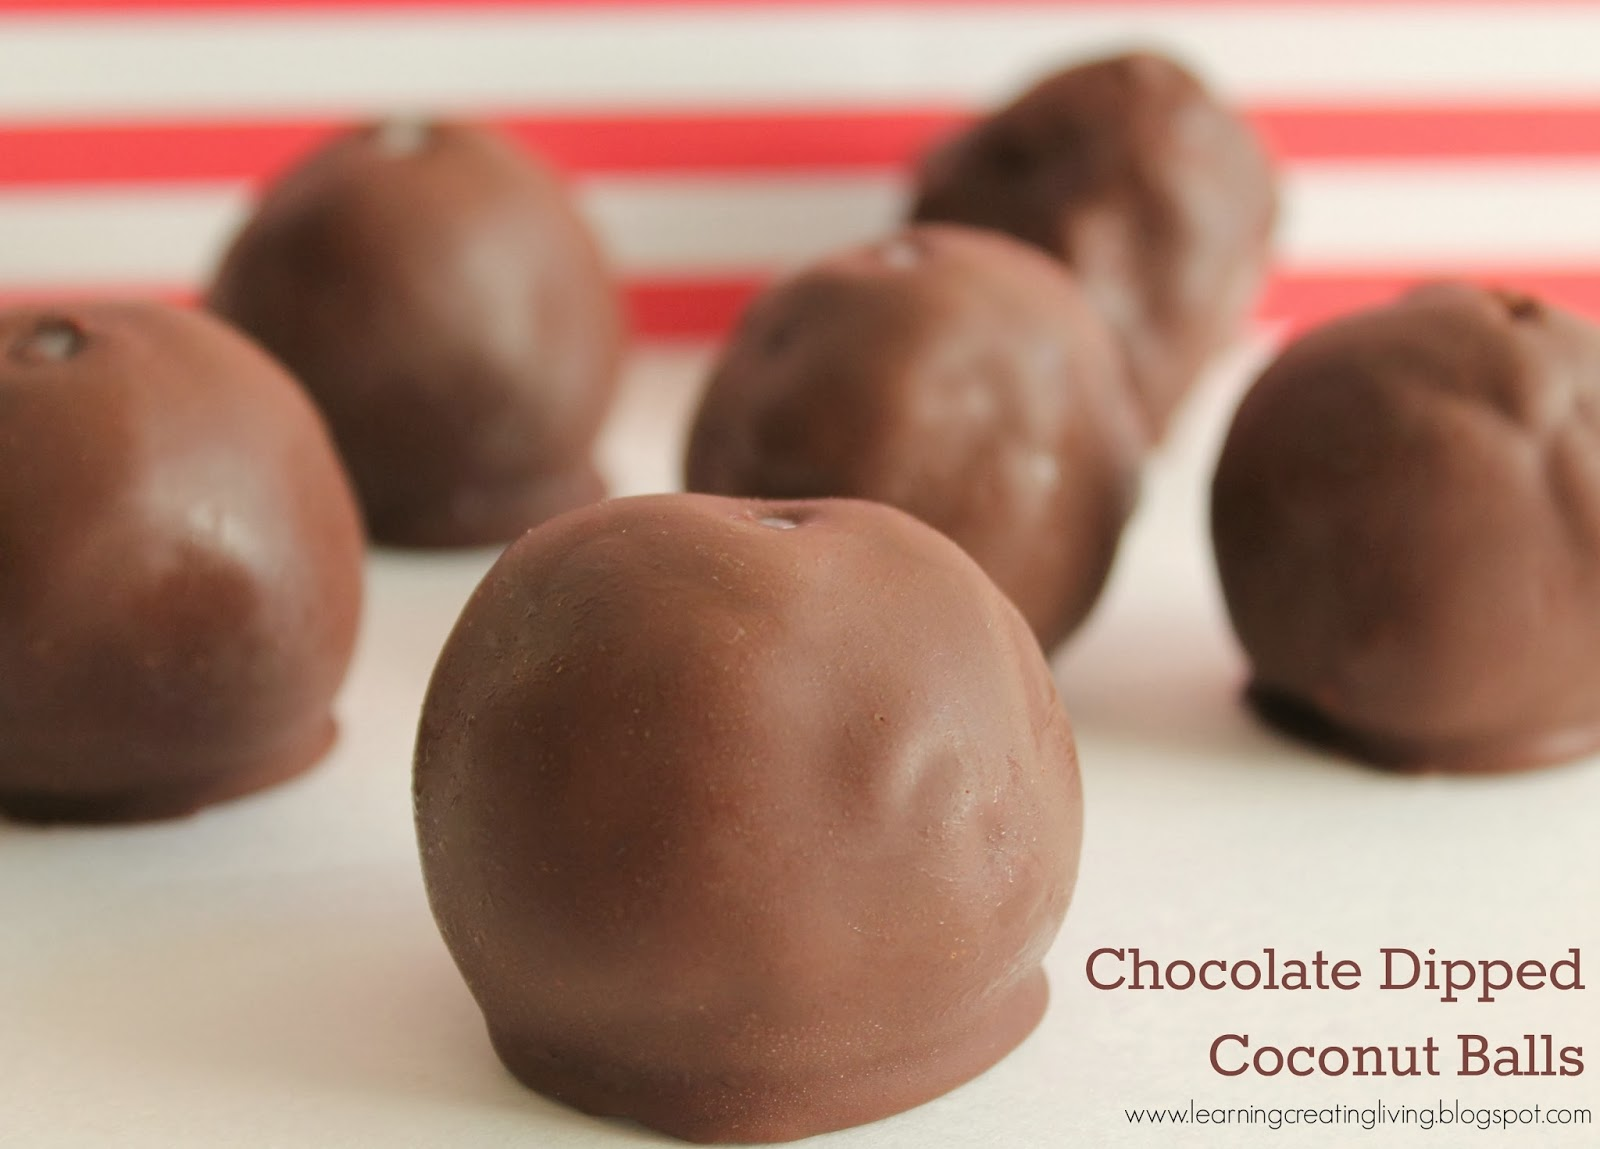 ... chocolate dipped meringues chocolate dipped nuts chocolate dipped